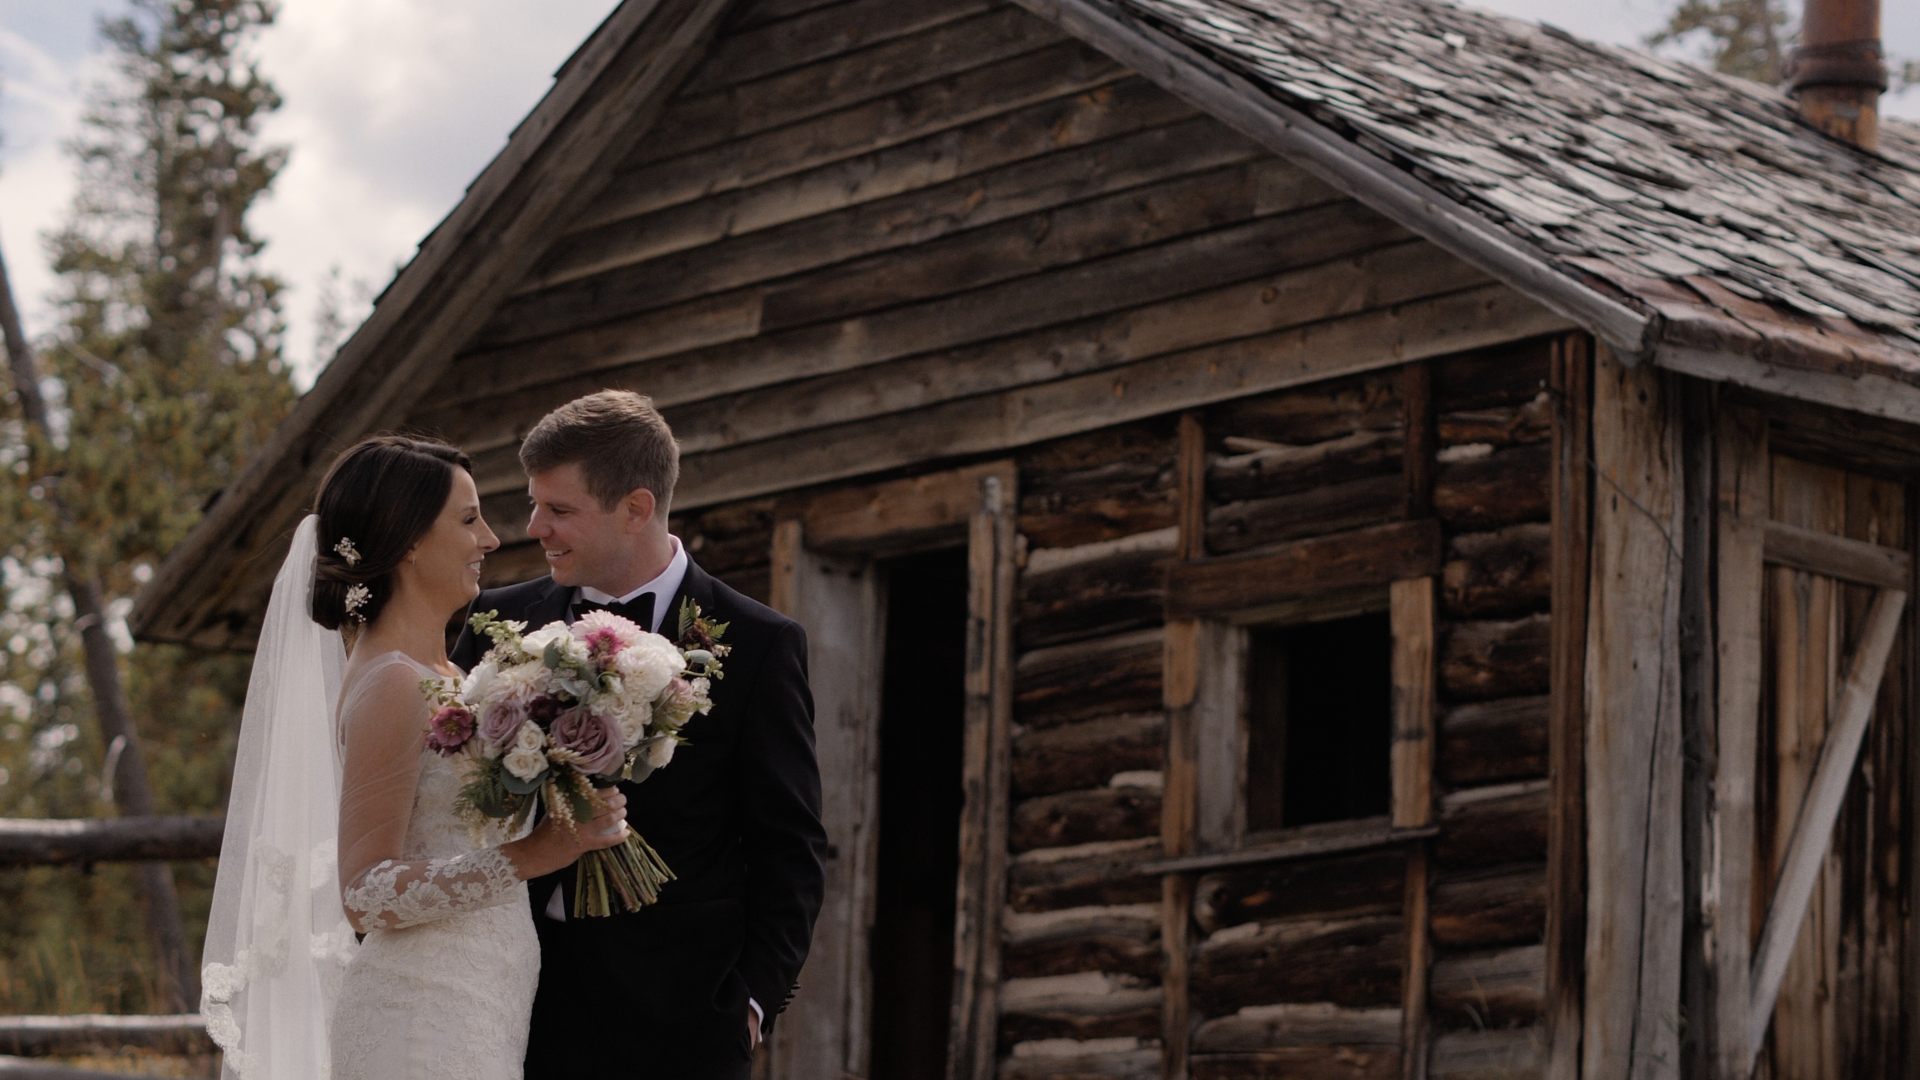 Laura + Lucas | Granby, Colorado | Devil's Thumb Ranch